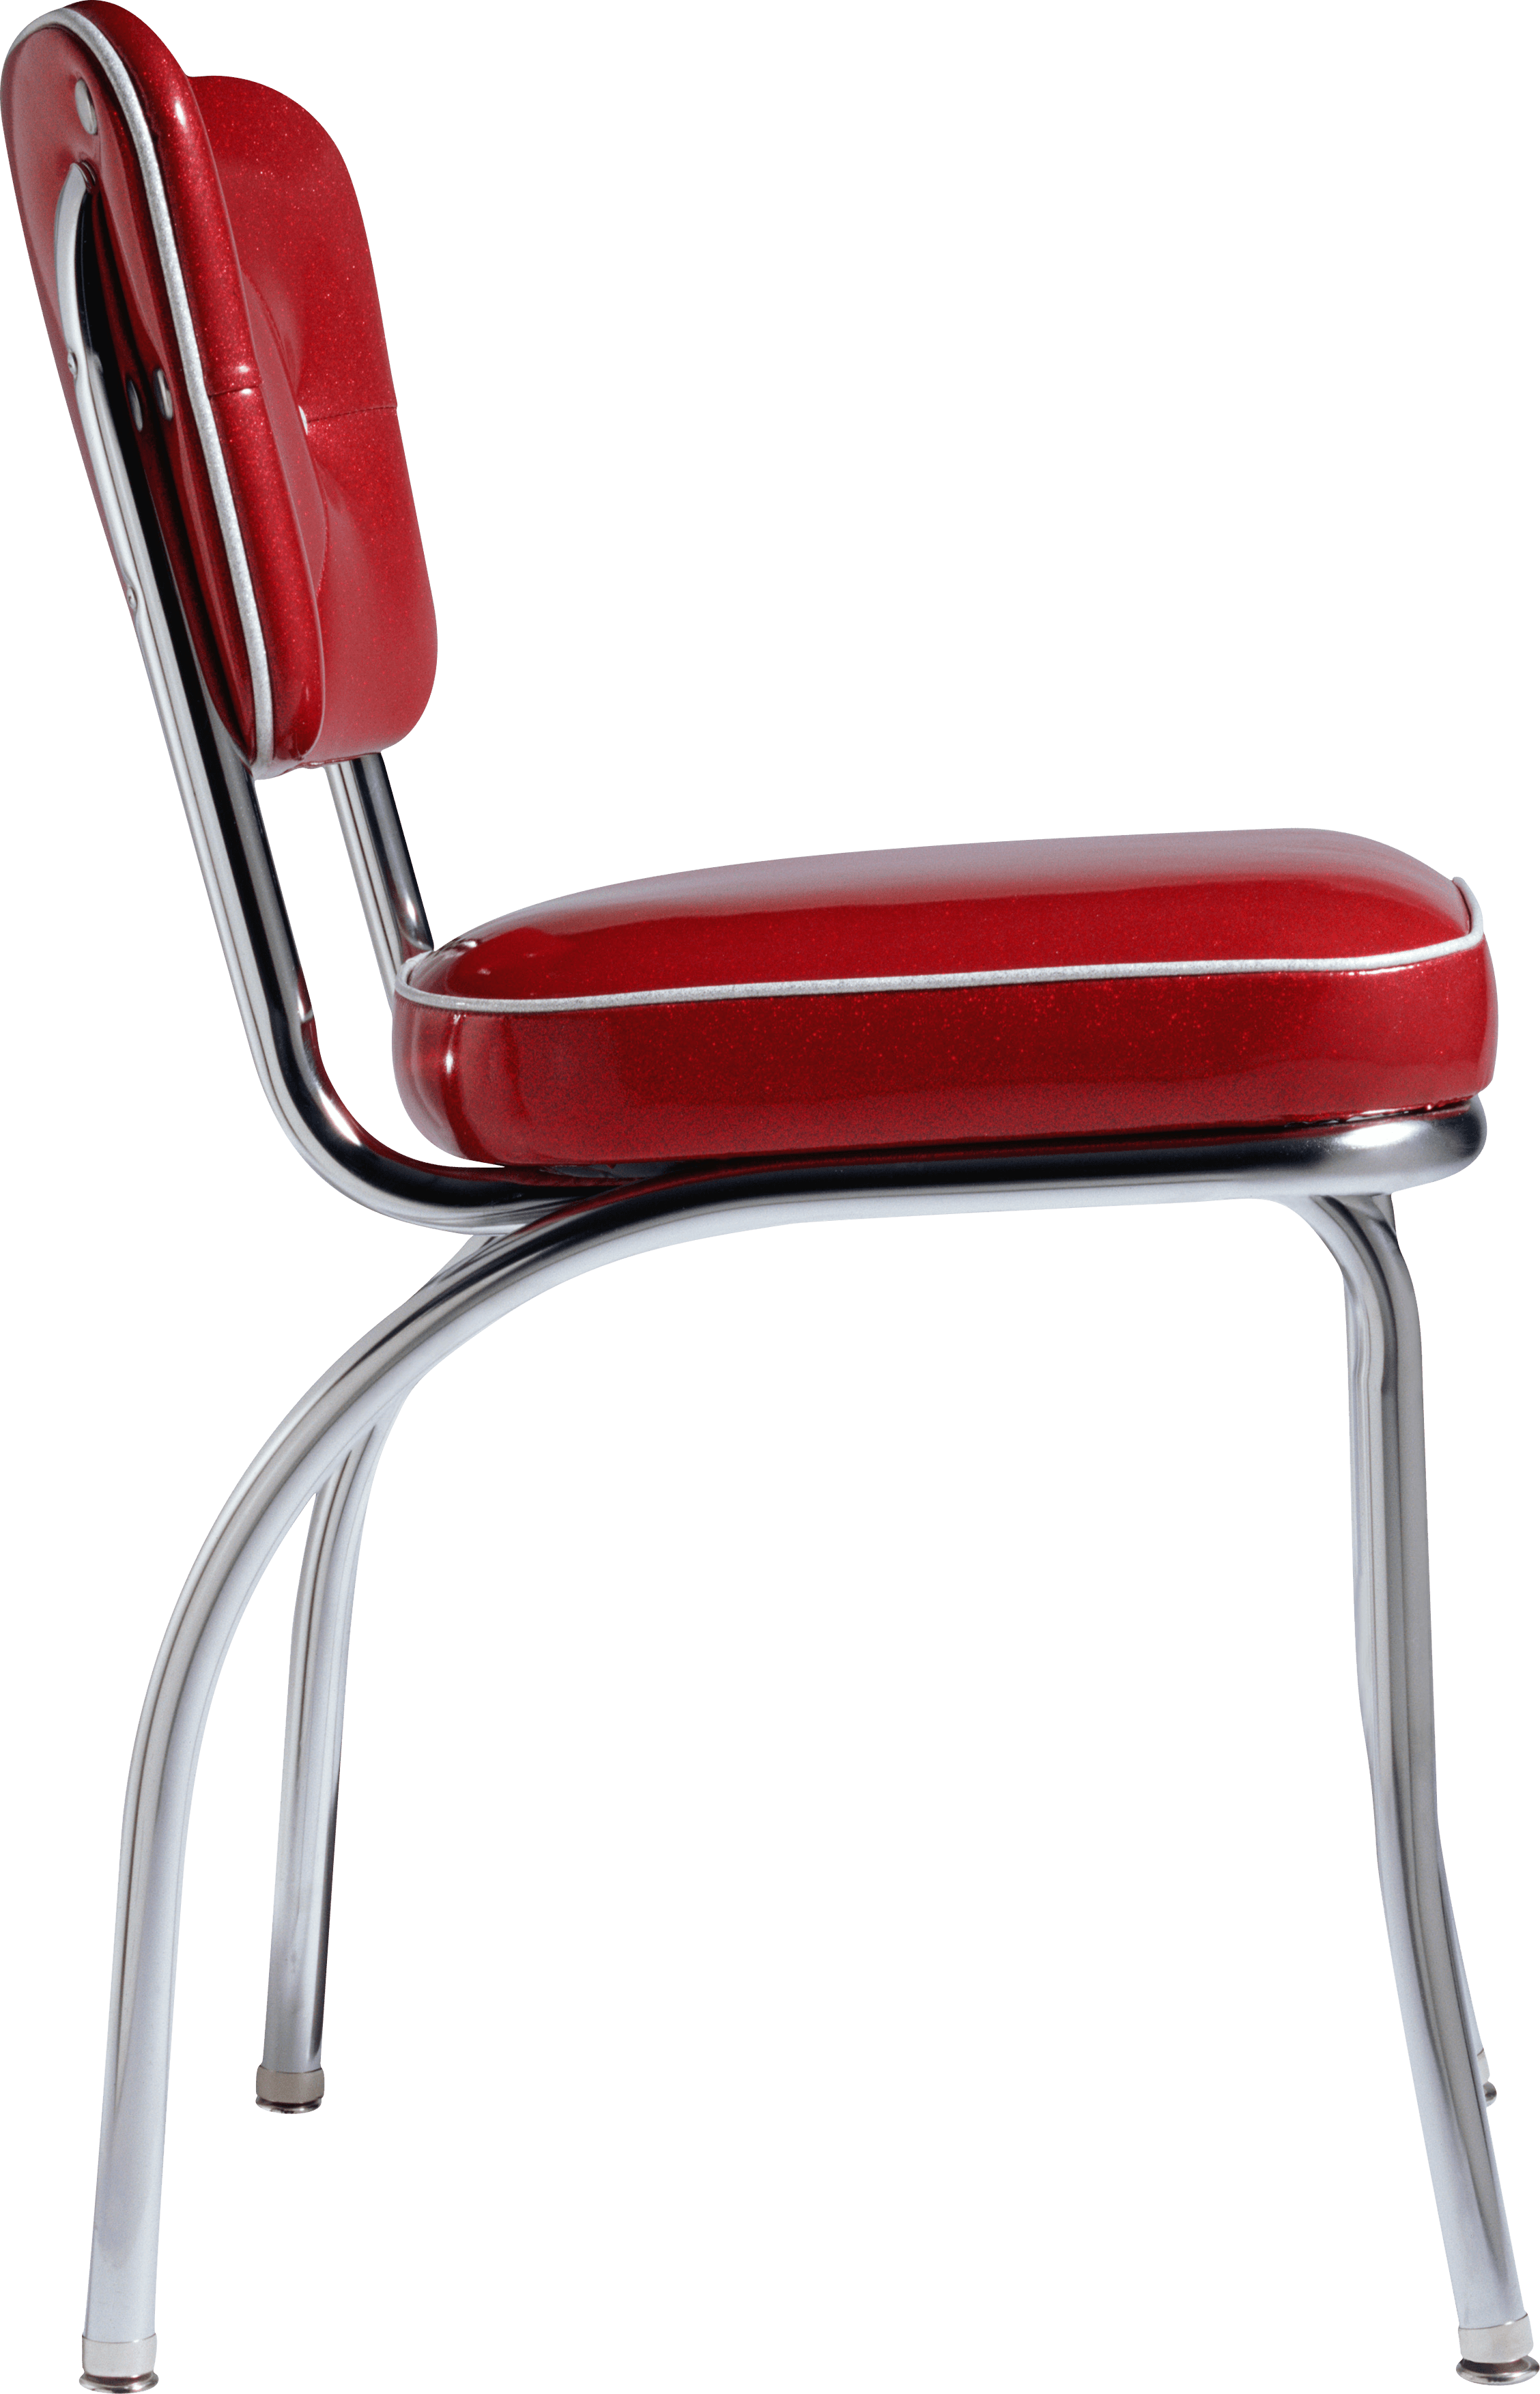 download chair png image png image pngimg #13334